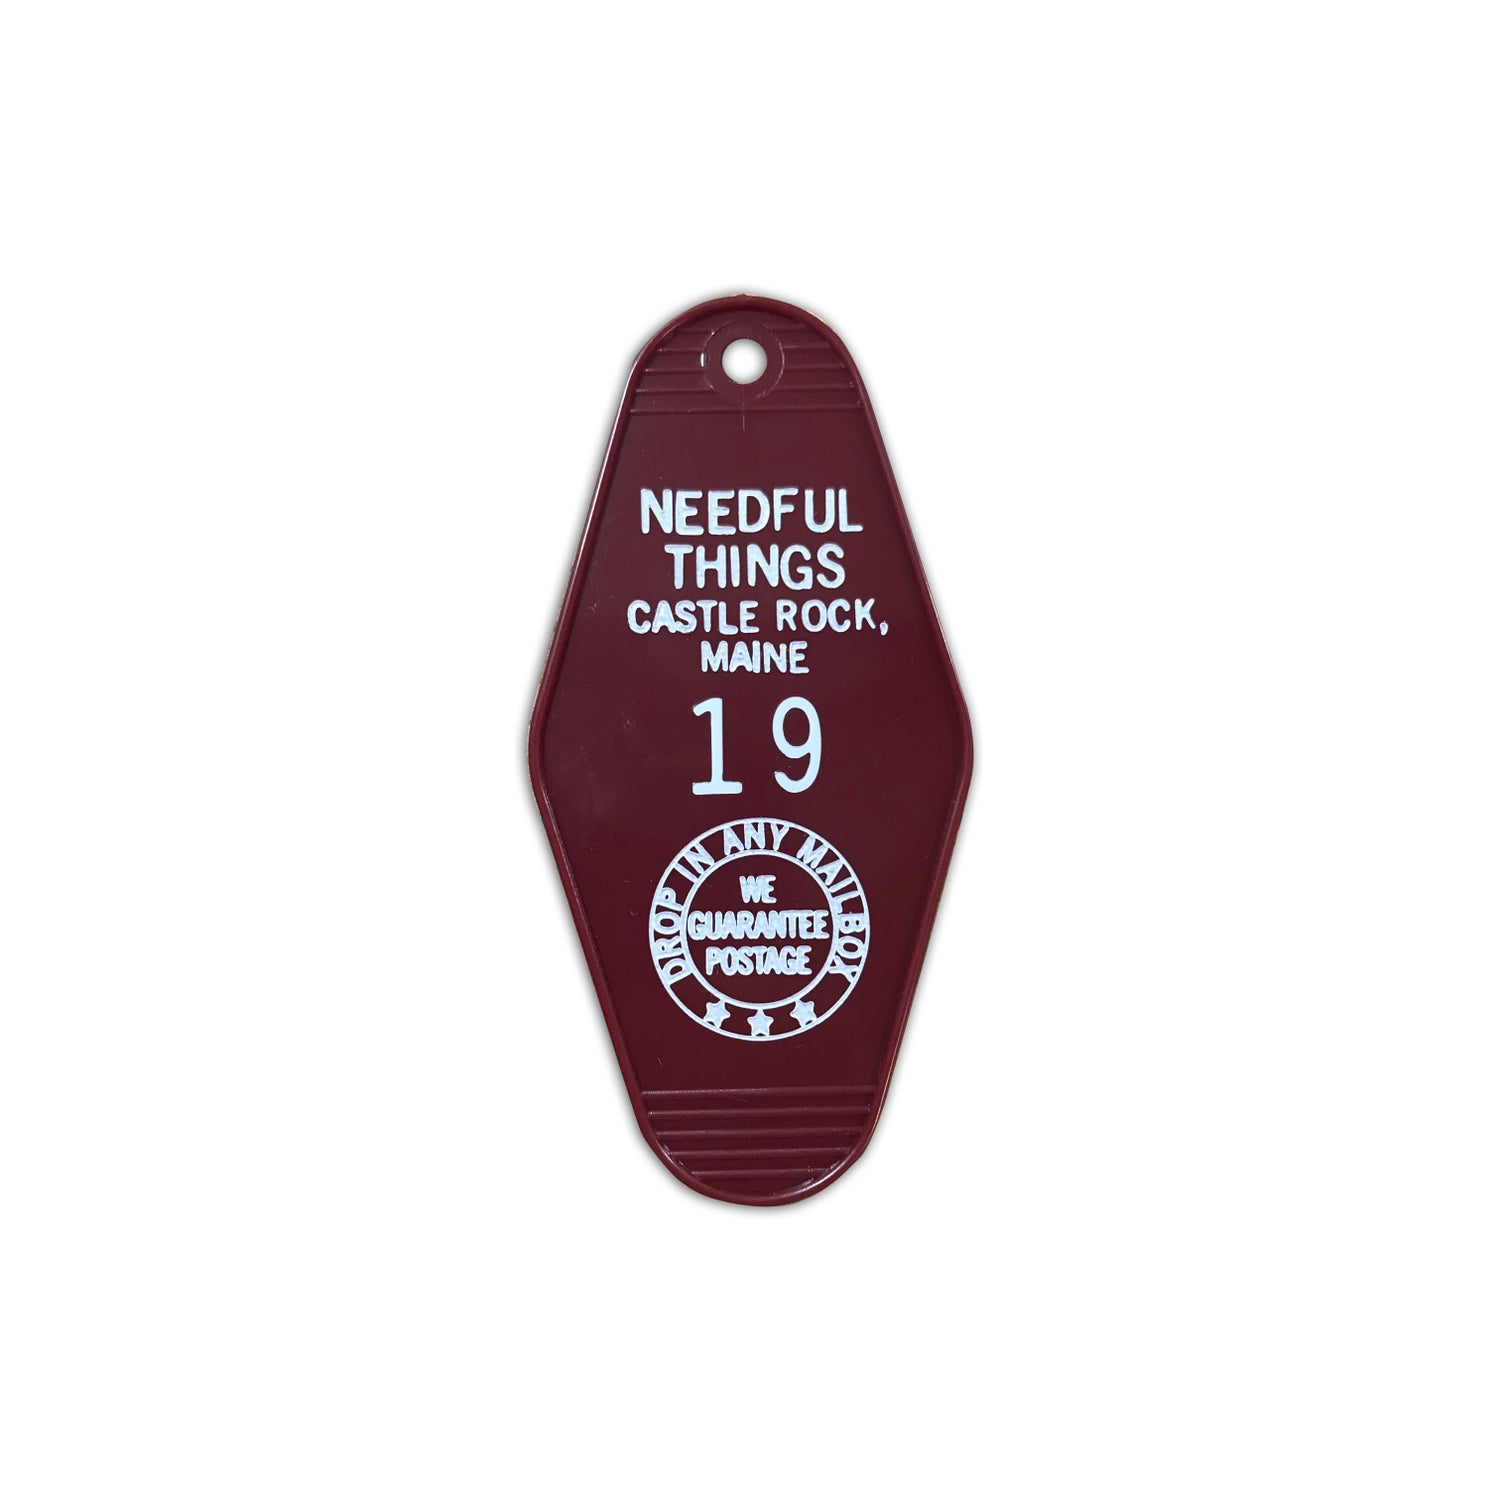 Image of Needful Things key tag